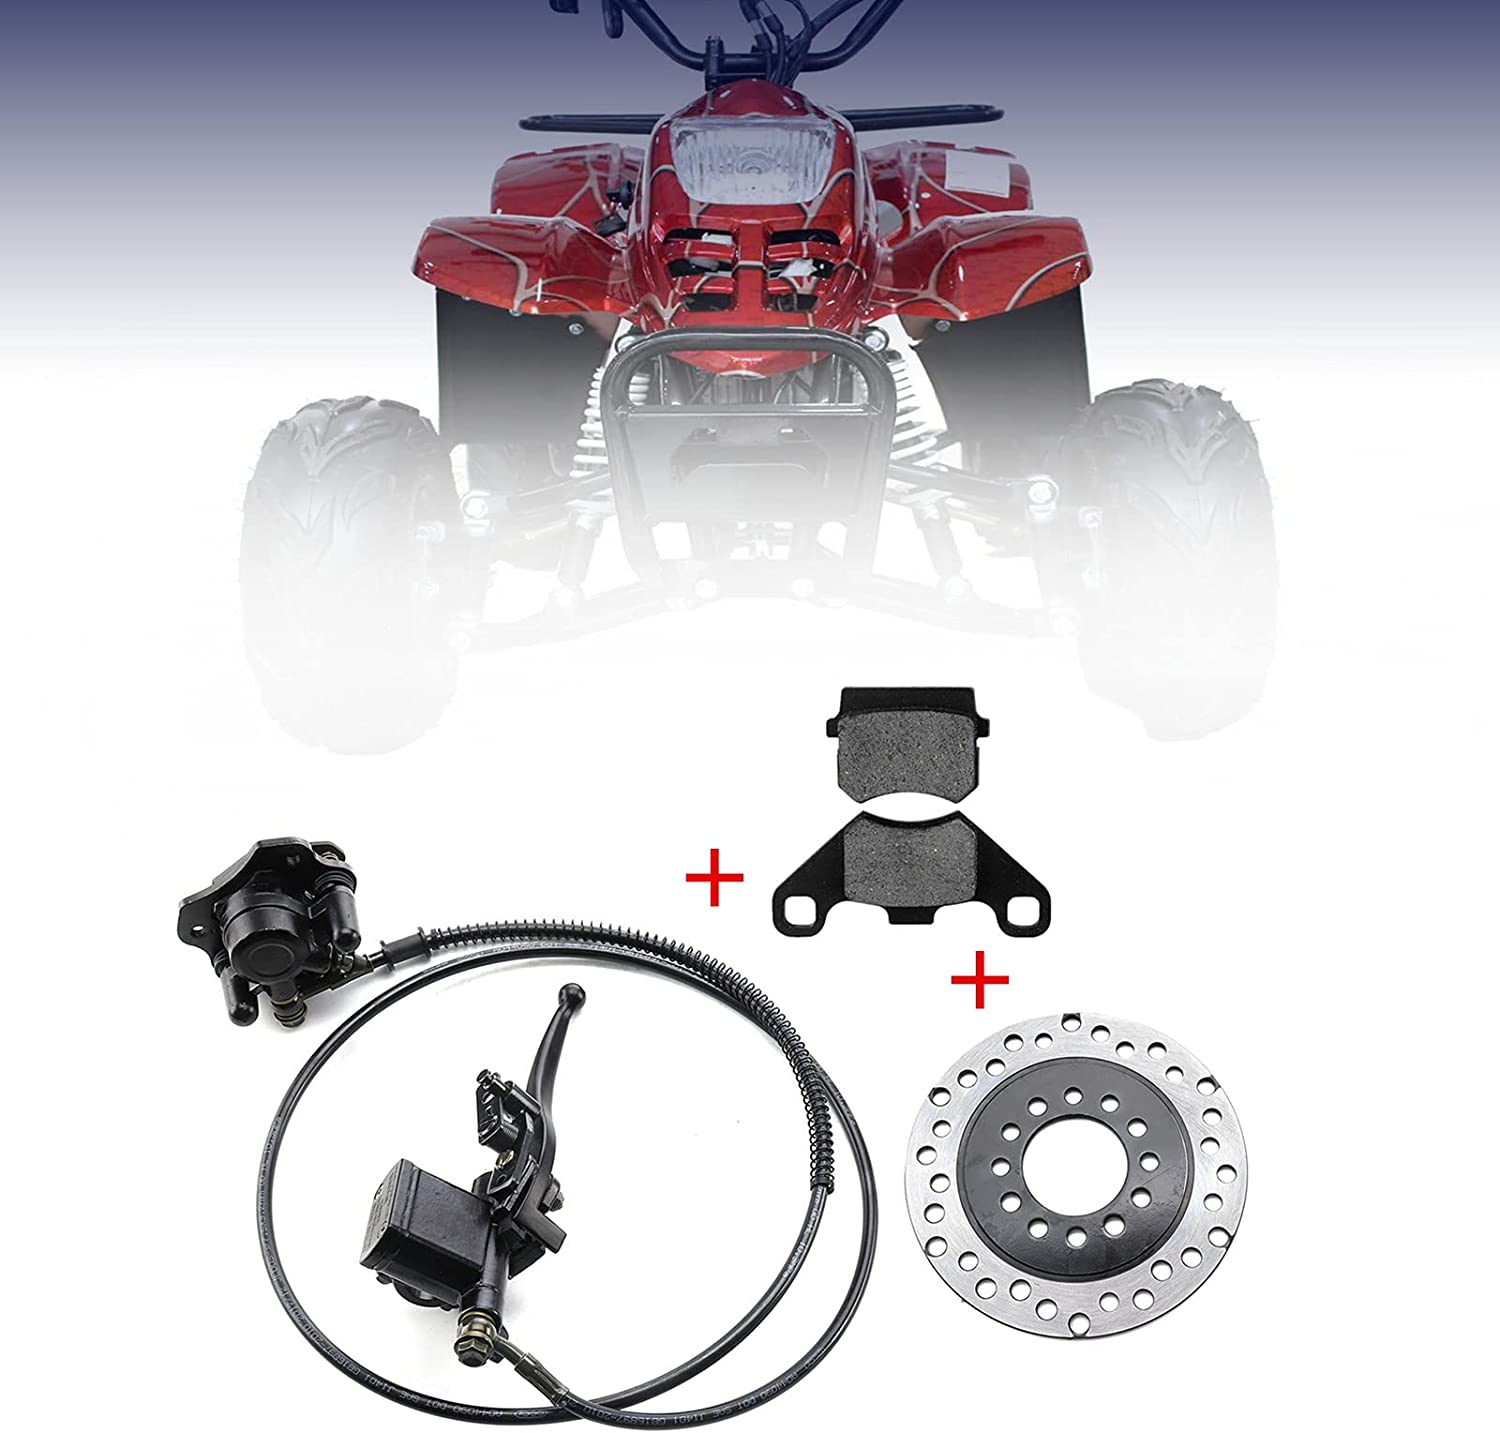 MOFANS ATV Brake Max 77% OFF Fort Worth Mall Master Cylinder Brak Assembly with Caliper Disc